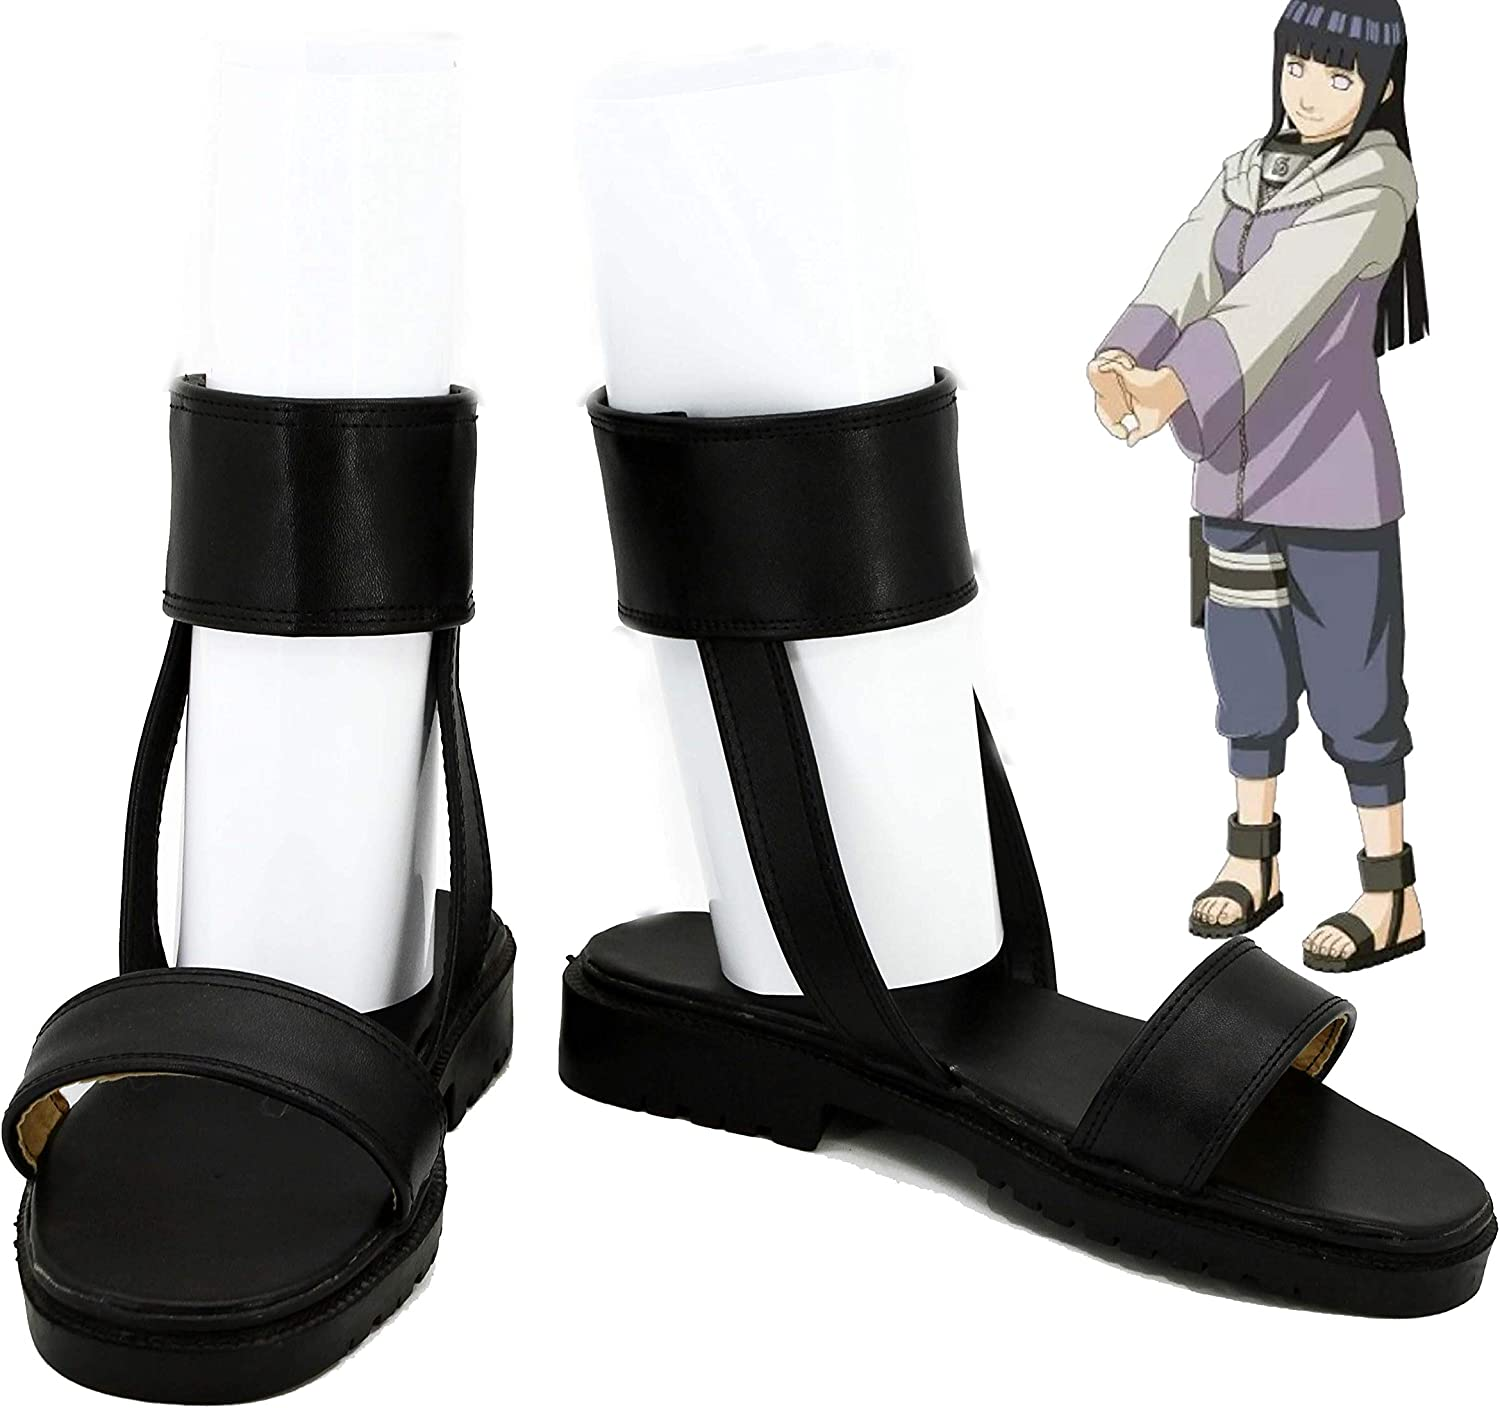 NARUTO The Last Hyuga Hinata Cosplay Shoes Boots Custom Made